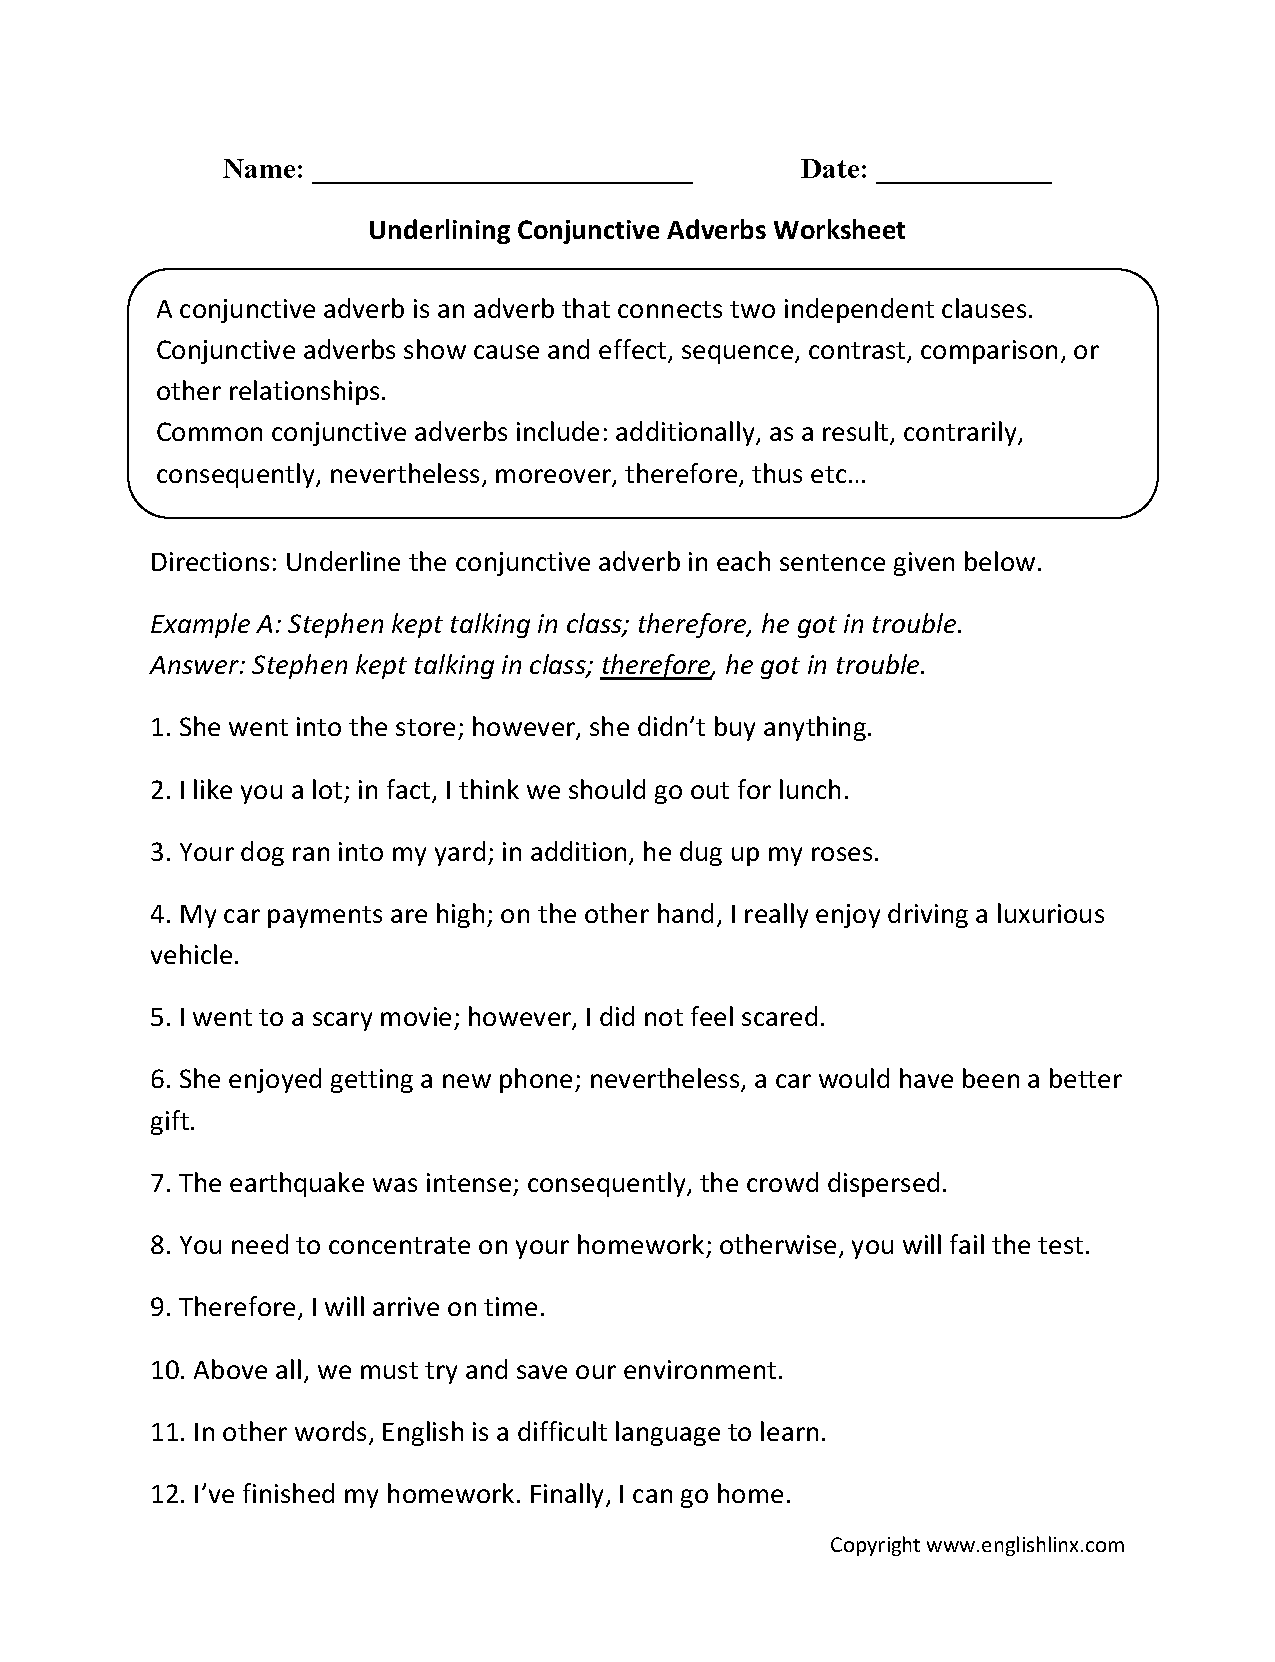 Weirdmailus  Winsome Englishlinxcom  Conjunctions Worksheets With Luxury Worksheet With Charming Free Toddler Printable Worksheets Also Rock Cycle Worksheet Elementary In Addition Adding And Subtracting Worksheets For St Grade And Simple And Compound Sentence Worksheet As Well As Blank Sudoku Worksheet Additionally Conversion Worksheets Th Grade From Englishlinxcom With Weirdmailus  Luxury Englishlinxcom  Conjunctions Worksheets With Charming Worksheet And Winsome Free Toddler Printable Worksheets Also Rock Cycle Worksheet Elementary In Addition Adding And Subtracting Worksheets For St Grade From Englishlinxcom